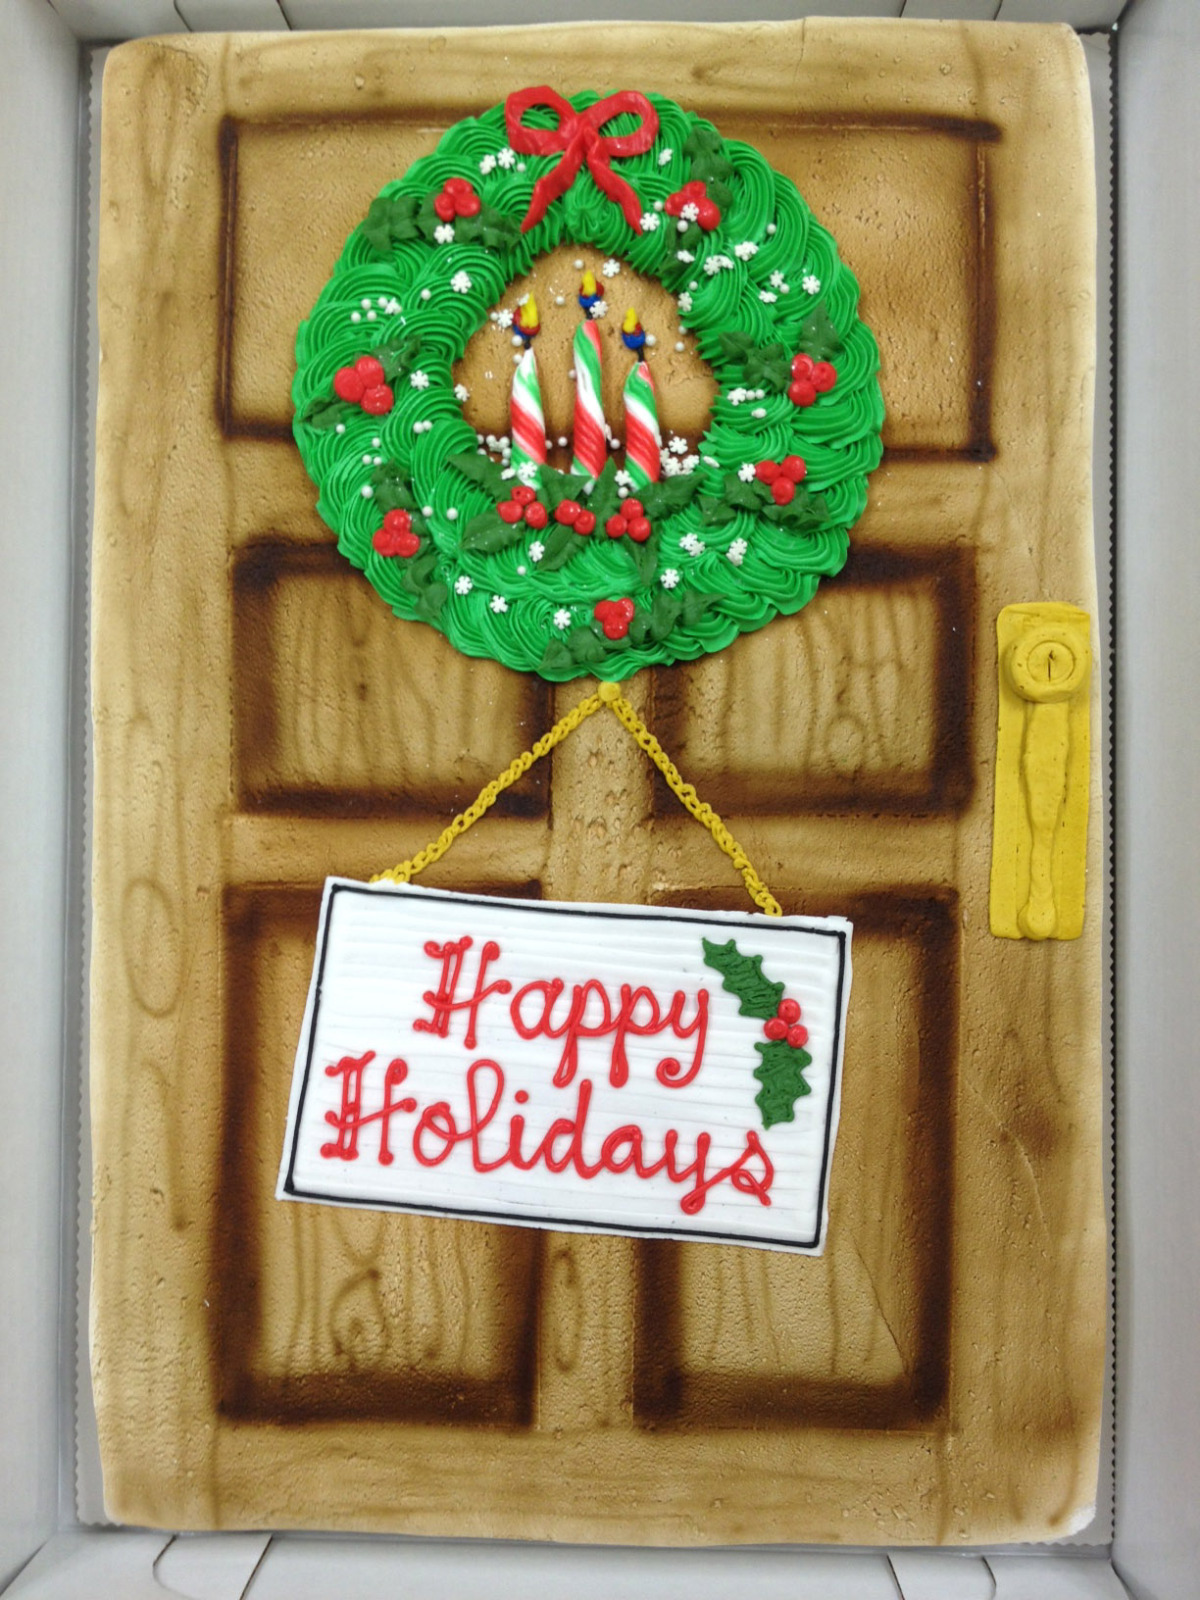 Door with Wreath - Happy Holidays